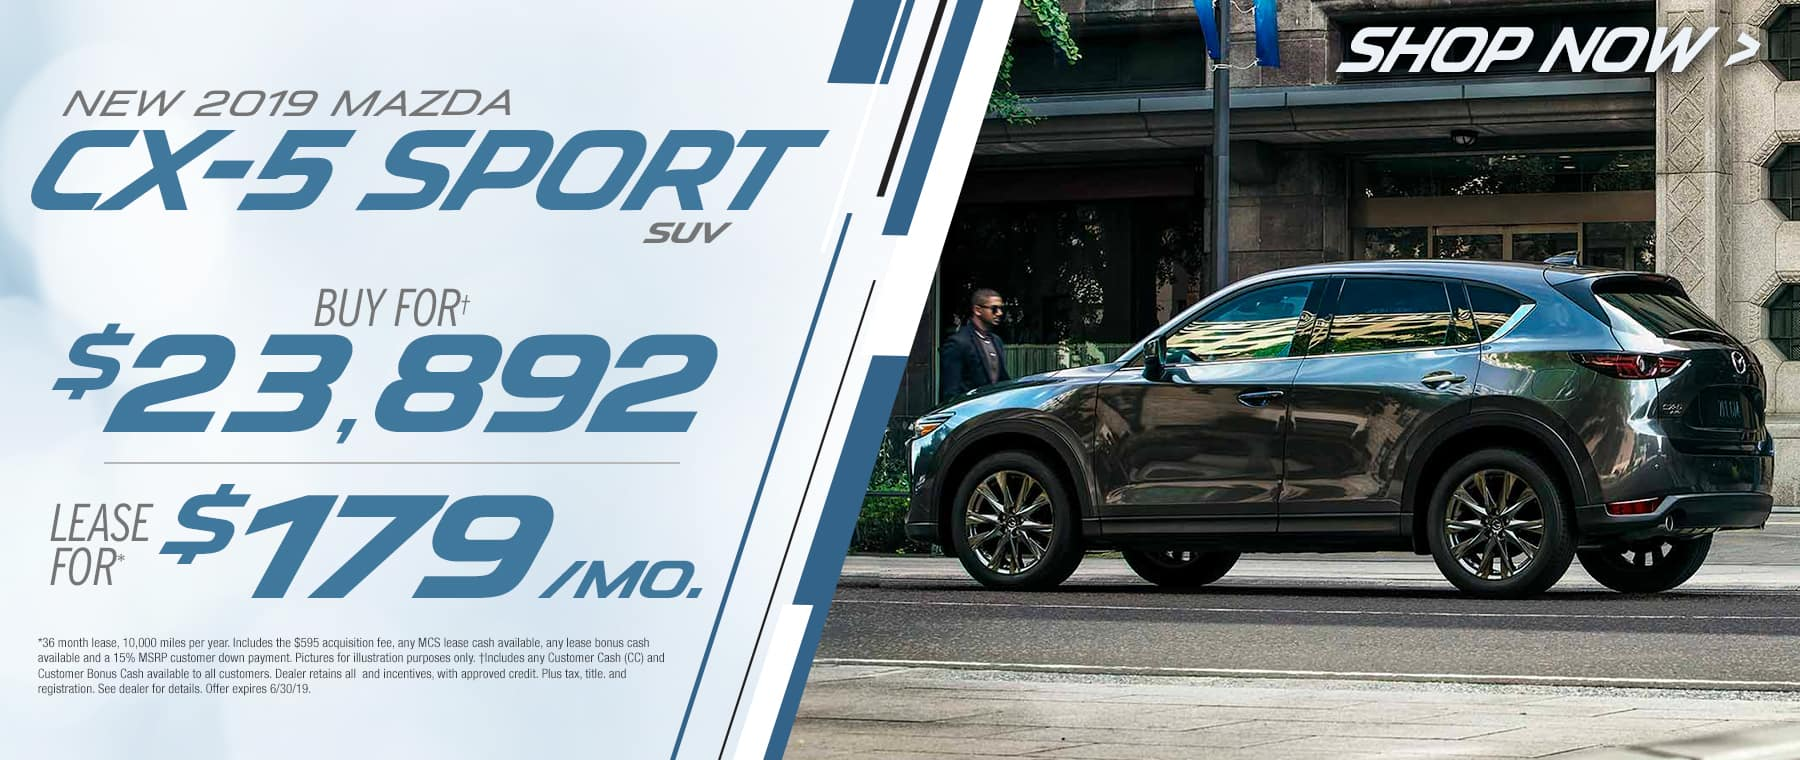 2019 Mazda CX-5$179 Per Month OR Buy For $23892